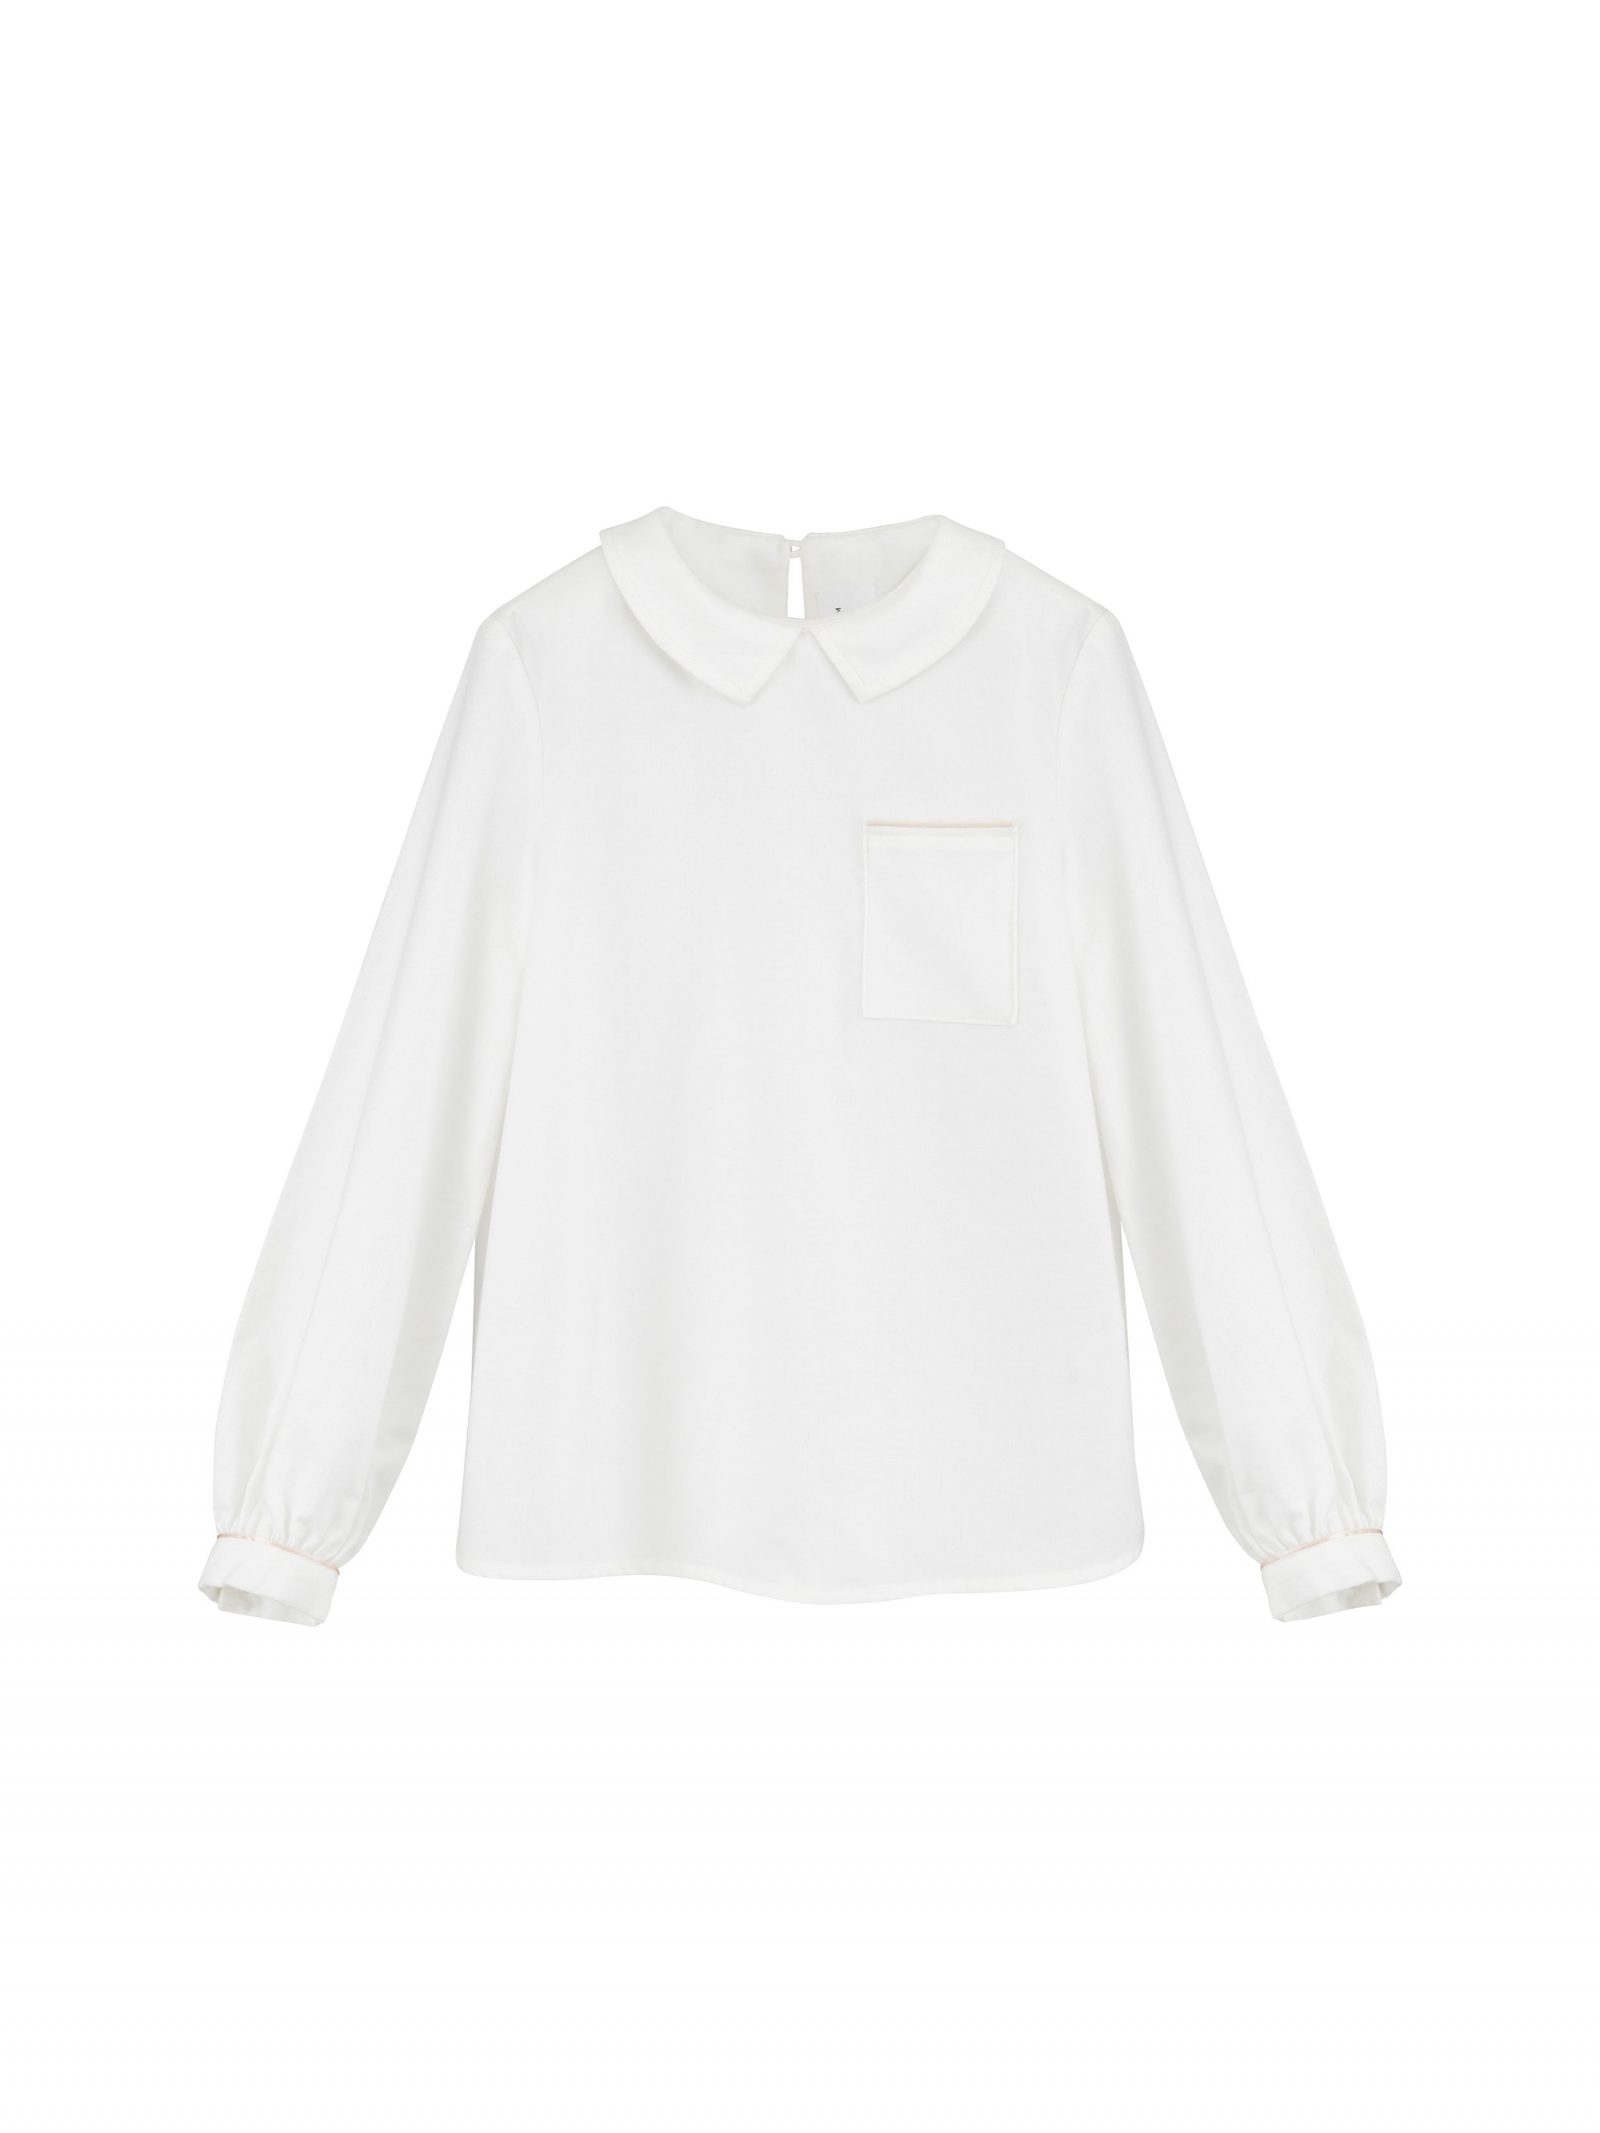 Audrey Long Sleeve Blouse in Ivory - Front